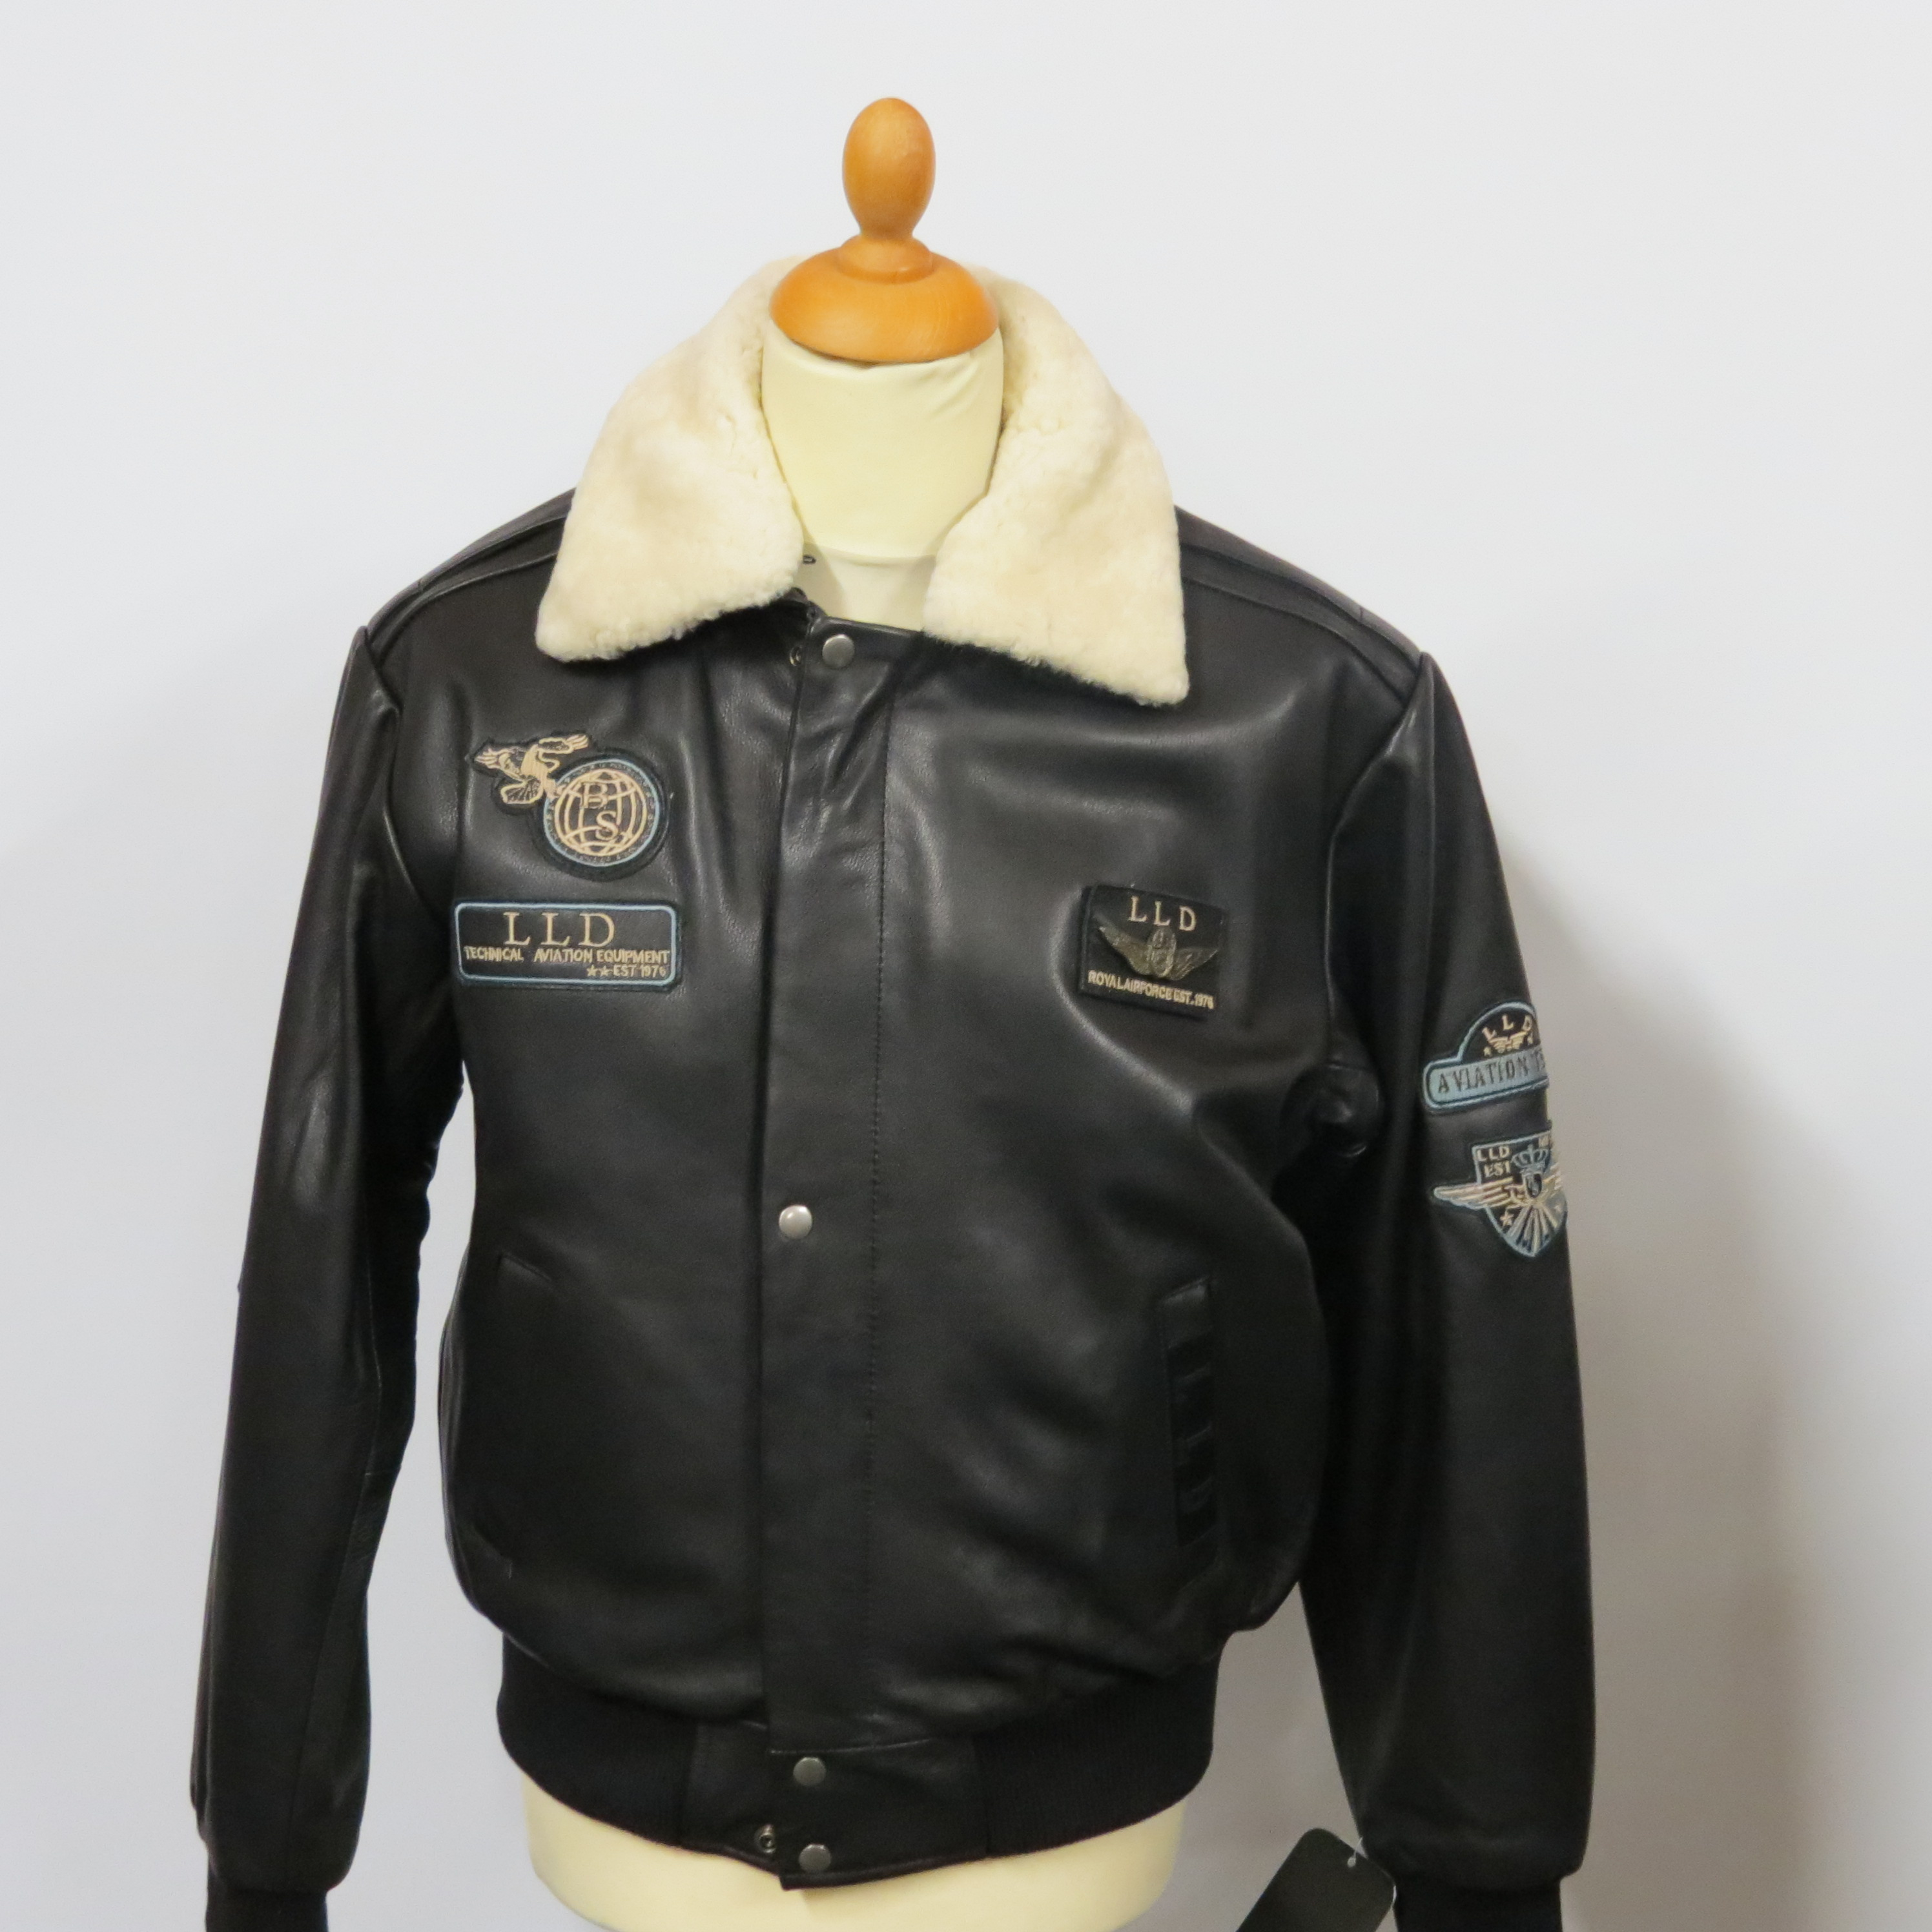 Mens 1976 pilot jacket with detachable fur collar. Milled hide sizes small to 4XL